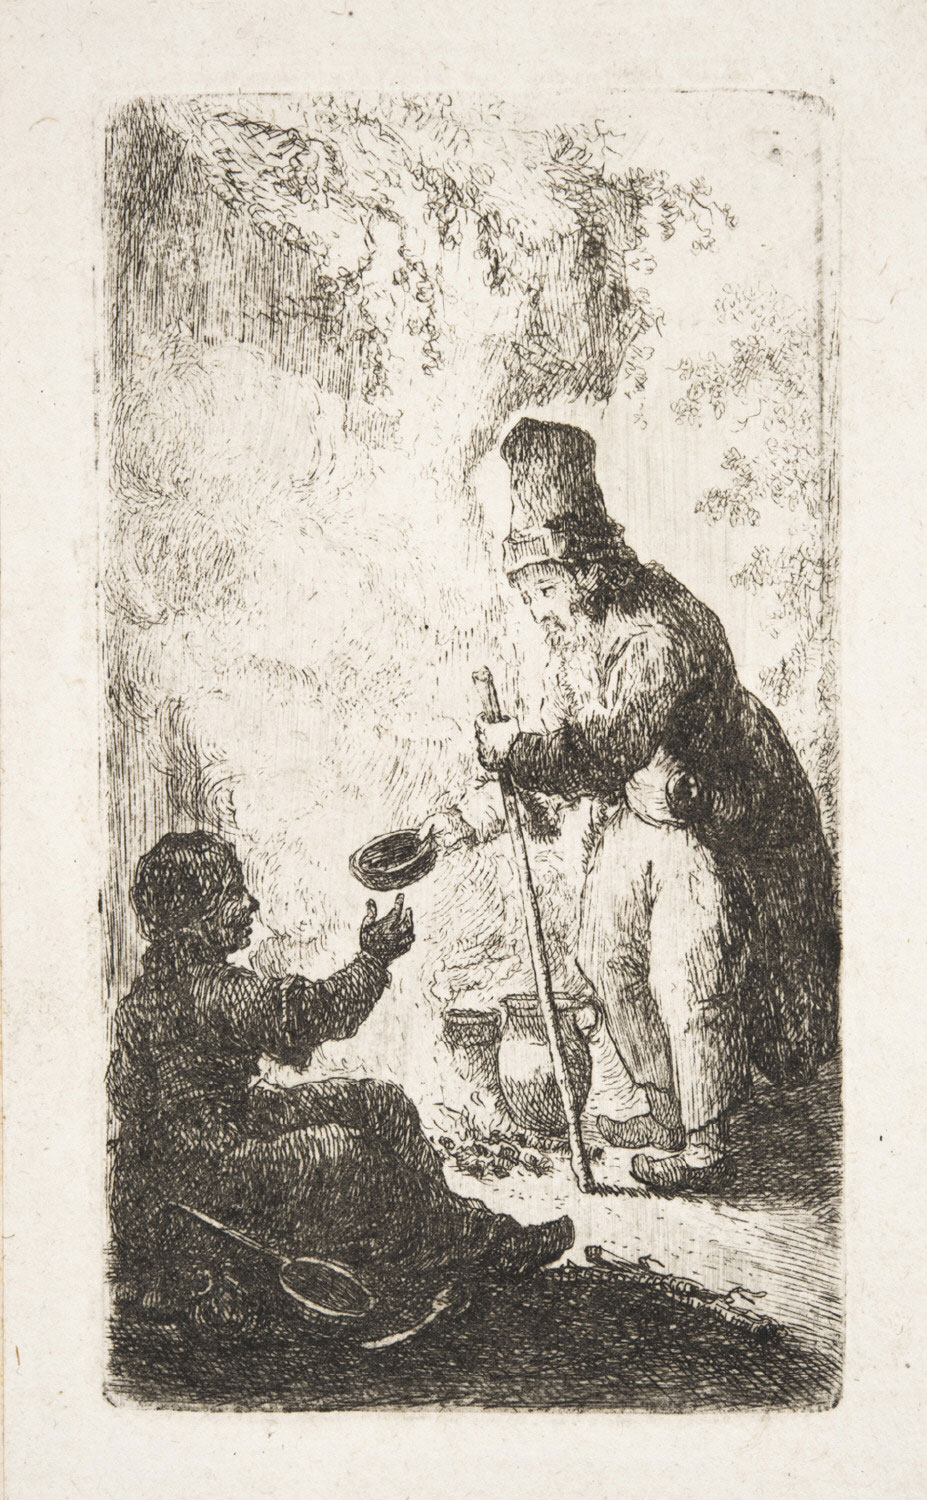 A Beggar and a Girl Cooking over a Fire